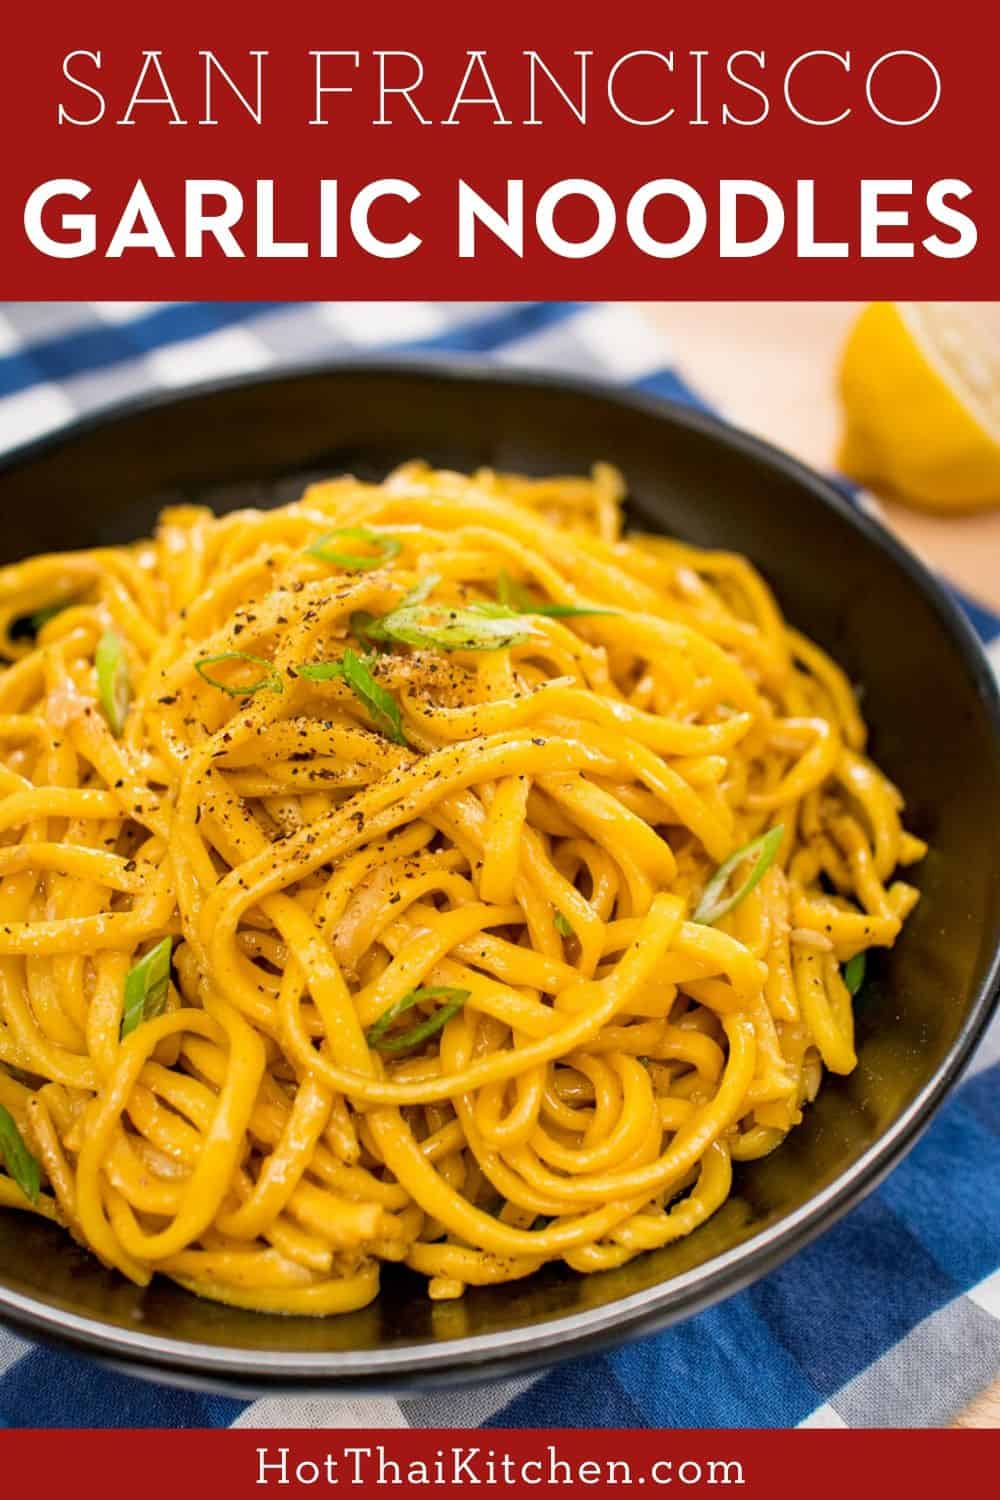 A famous dish from San Francisco, garlic noodles are buttery, chewy, and umami. So satisfying and goes well with a barbecue or a seafood feast! #eggnoodles #garlicnoodles #sidedish